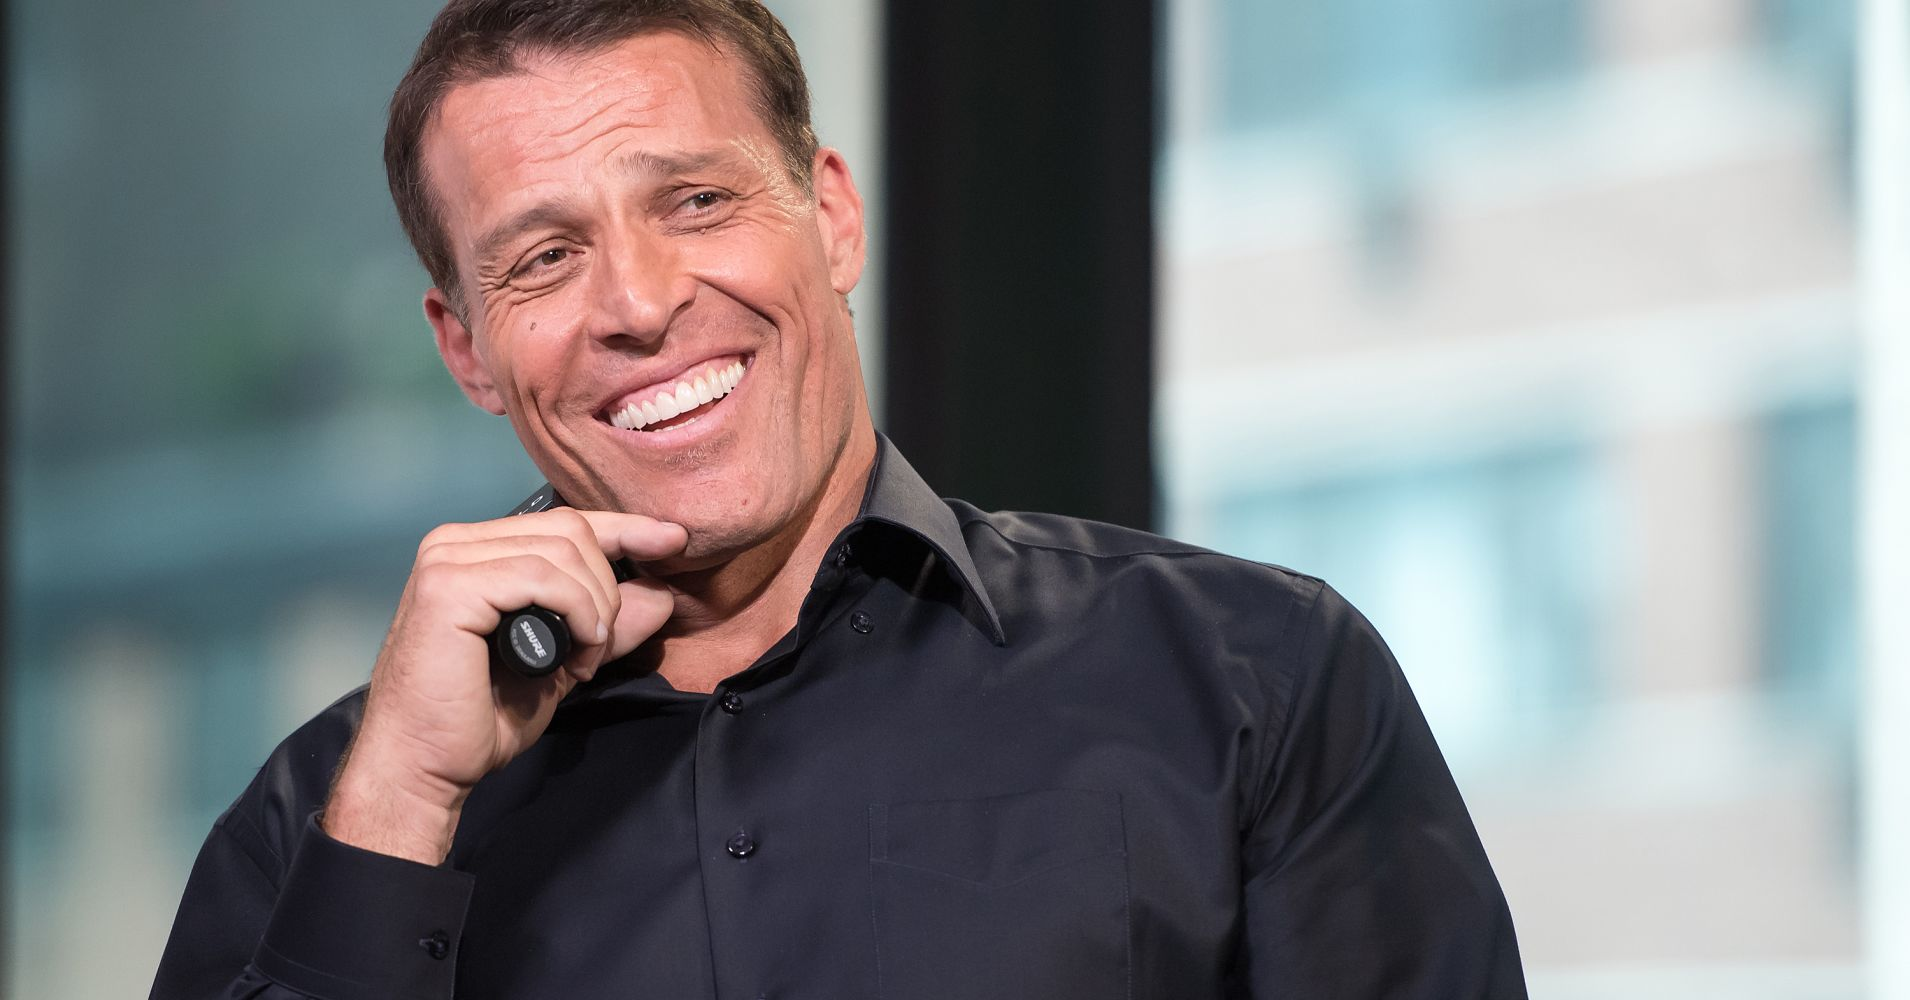 Tony Robbins - Co-founder of the Knowledge Broker Blueprint